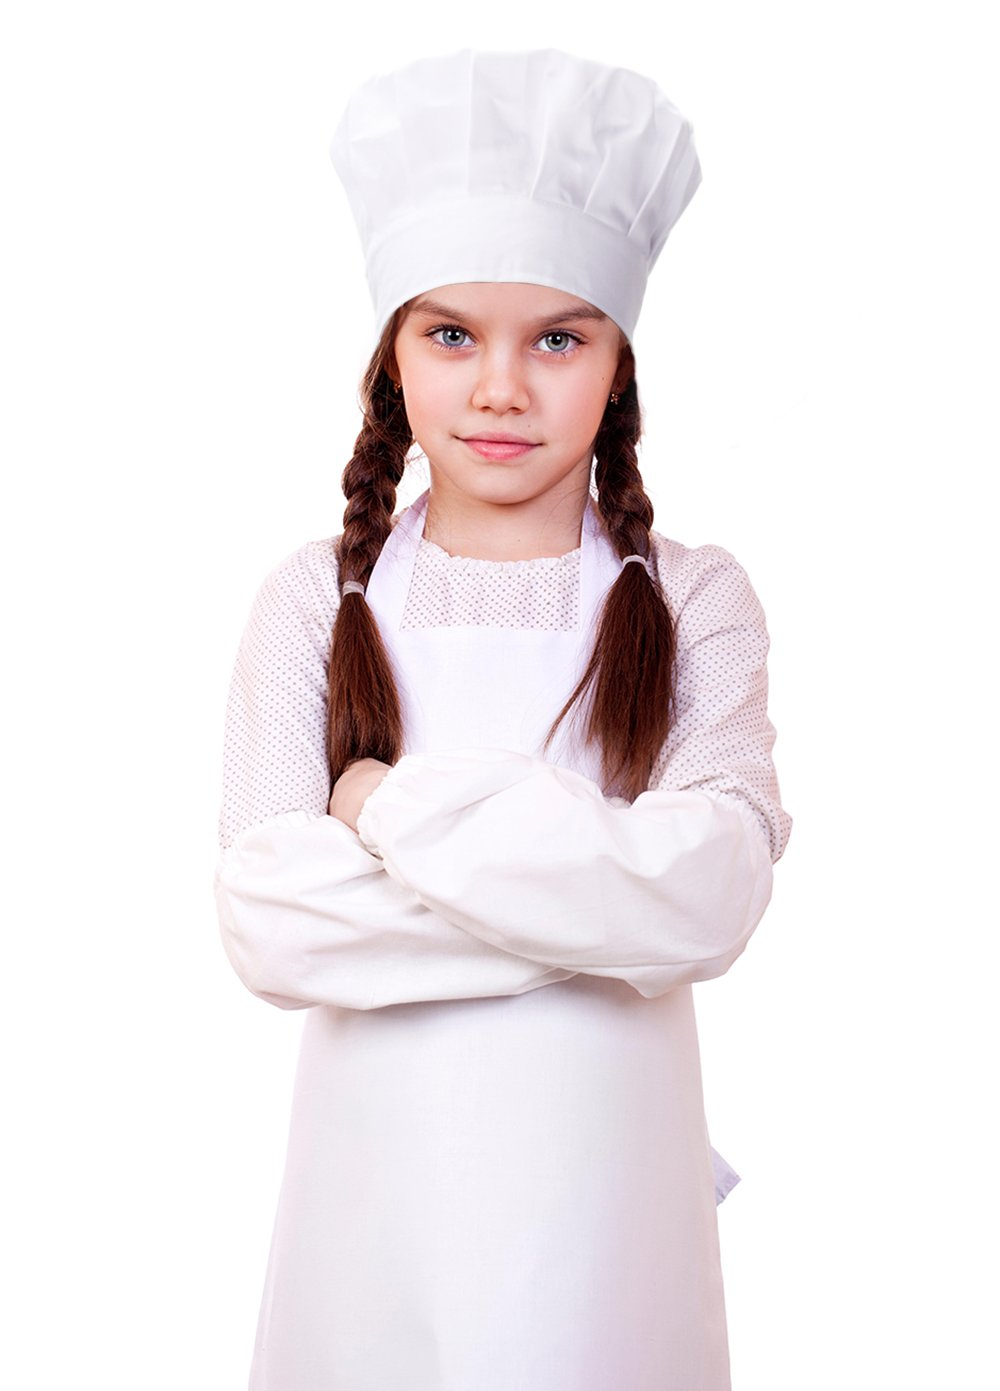 Kids Chef Set Includes Chef'Hat, Kitchen Apron, Oversleeves, 100% Cotton Costume, Perfect for Above 4 Years Old Children Cooking, Baking, Painting(White)